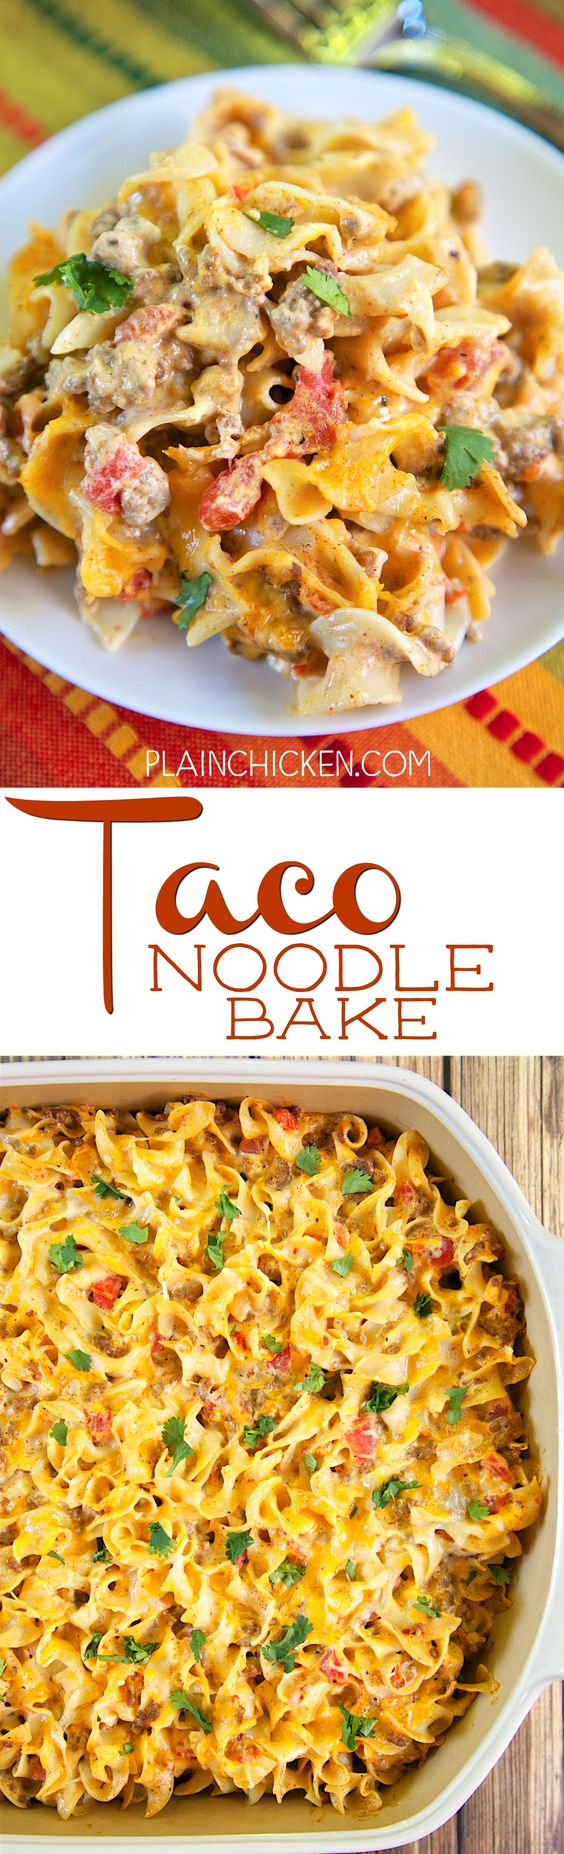 Taco Noodle Bake - SO good!!! Egg noodles, taco meat, cheese, diced ...